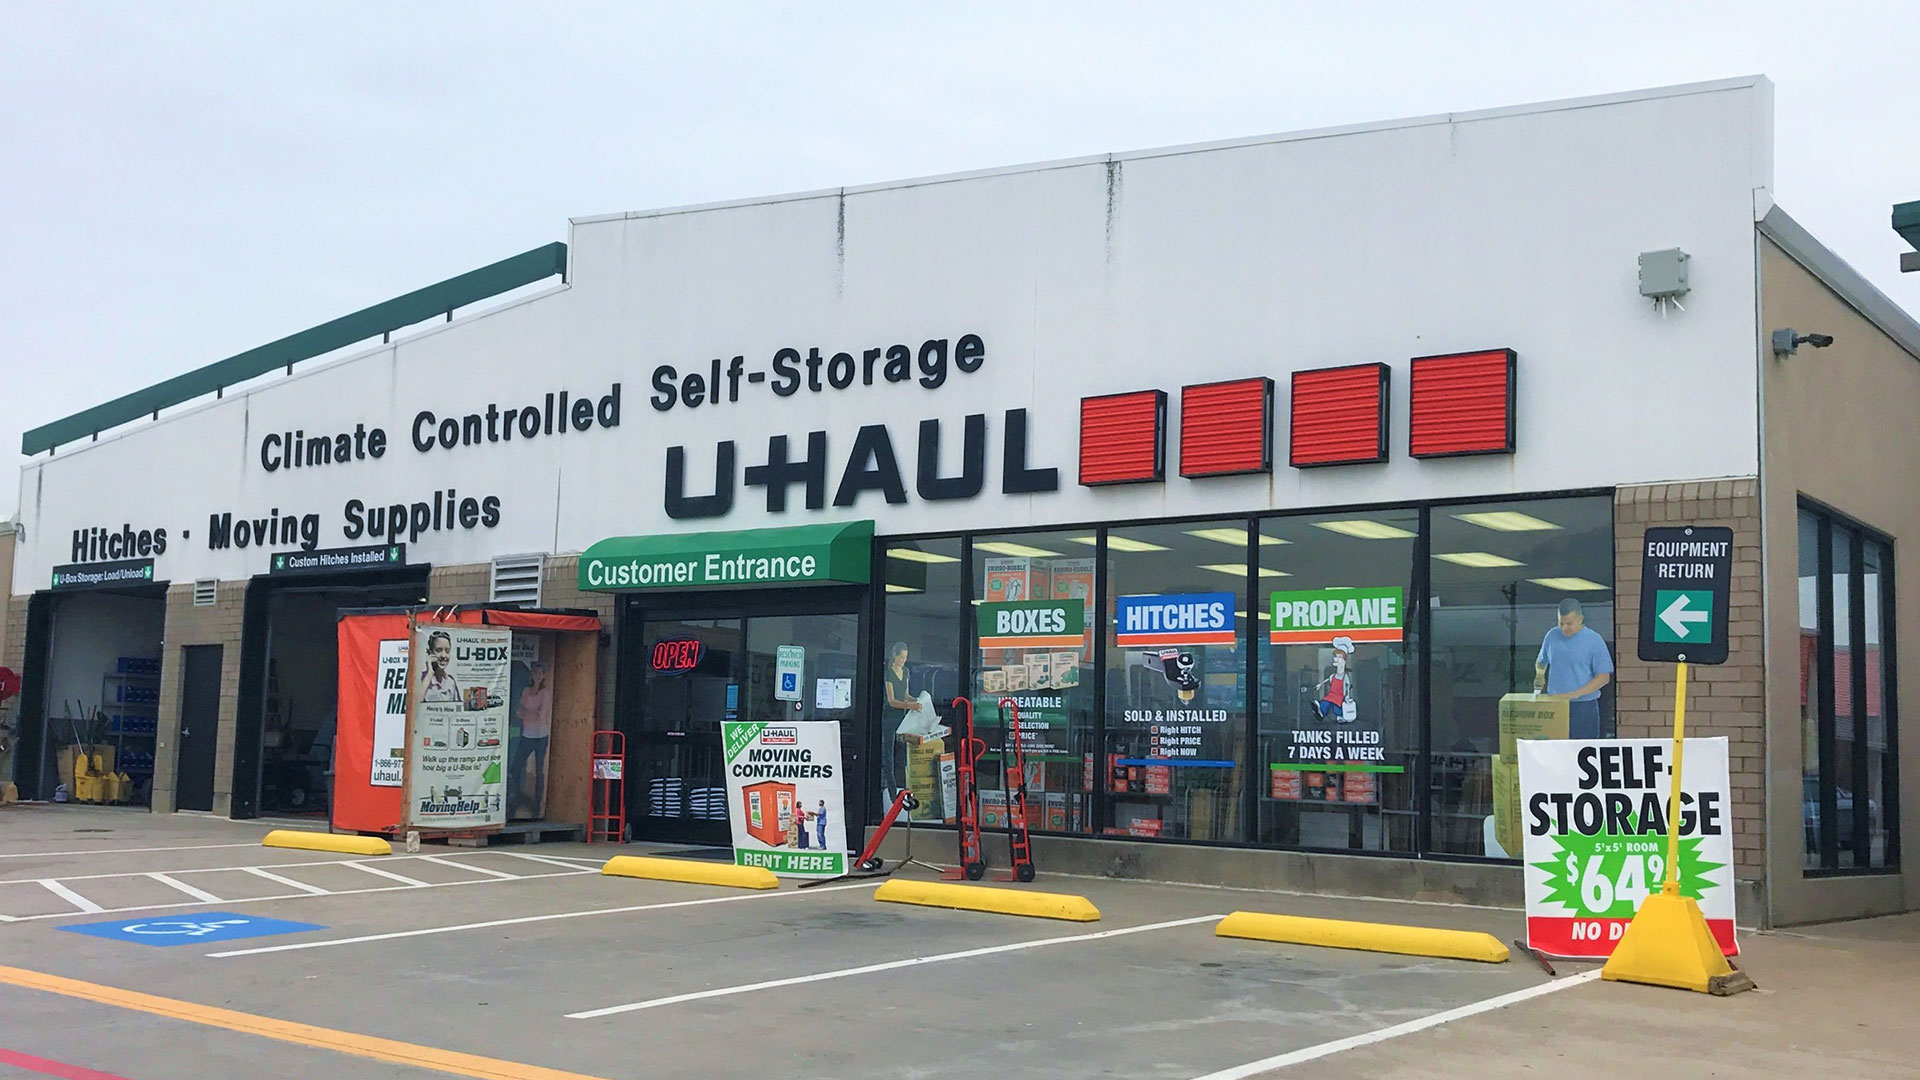 U-Haul Offers 30 Days of Free Self-Storage to Victims of Dallas Tornado